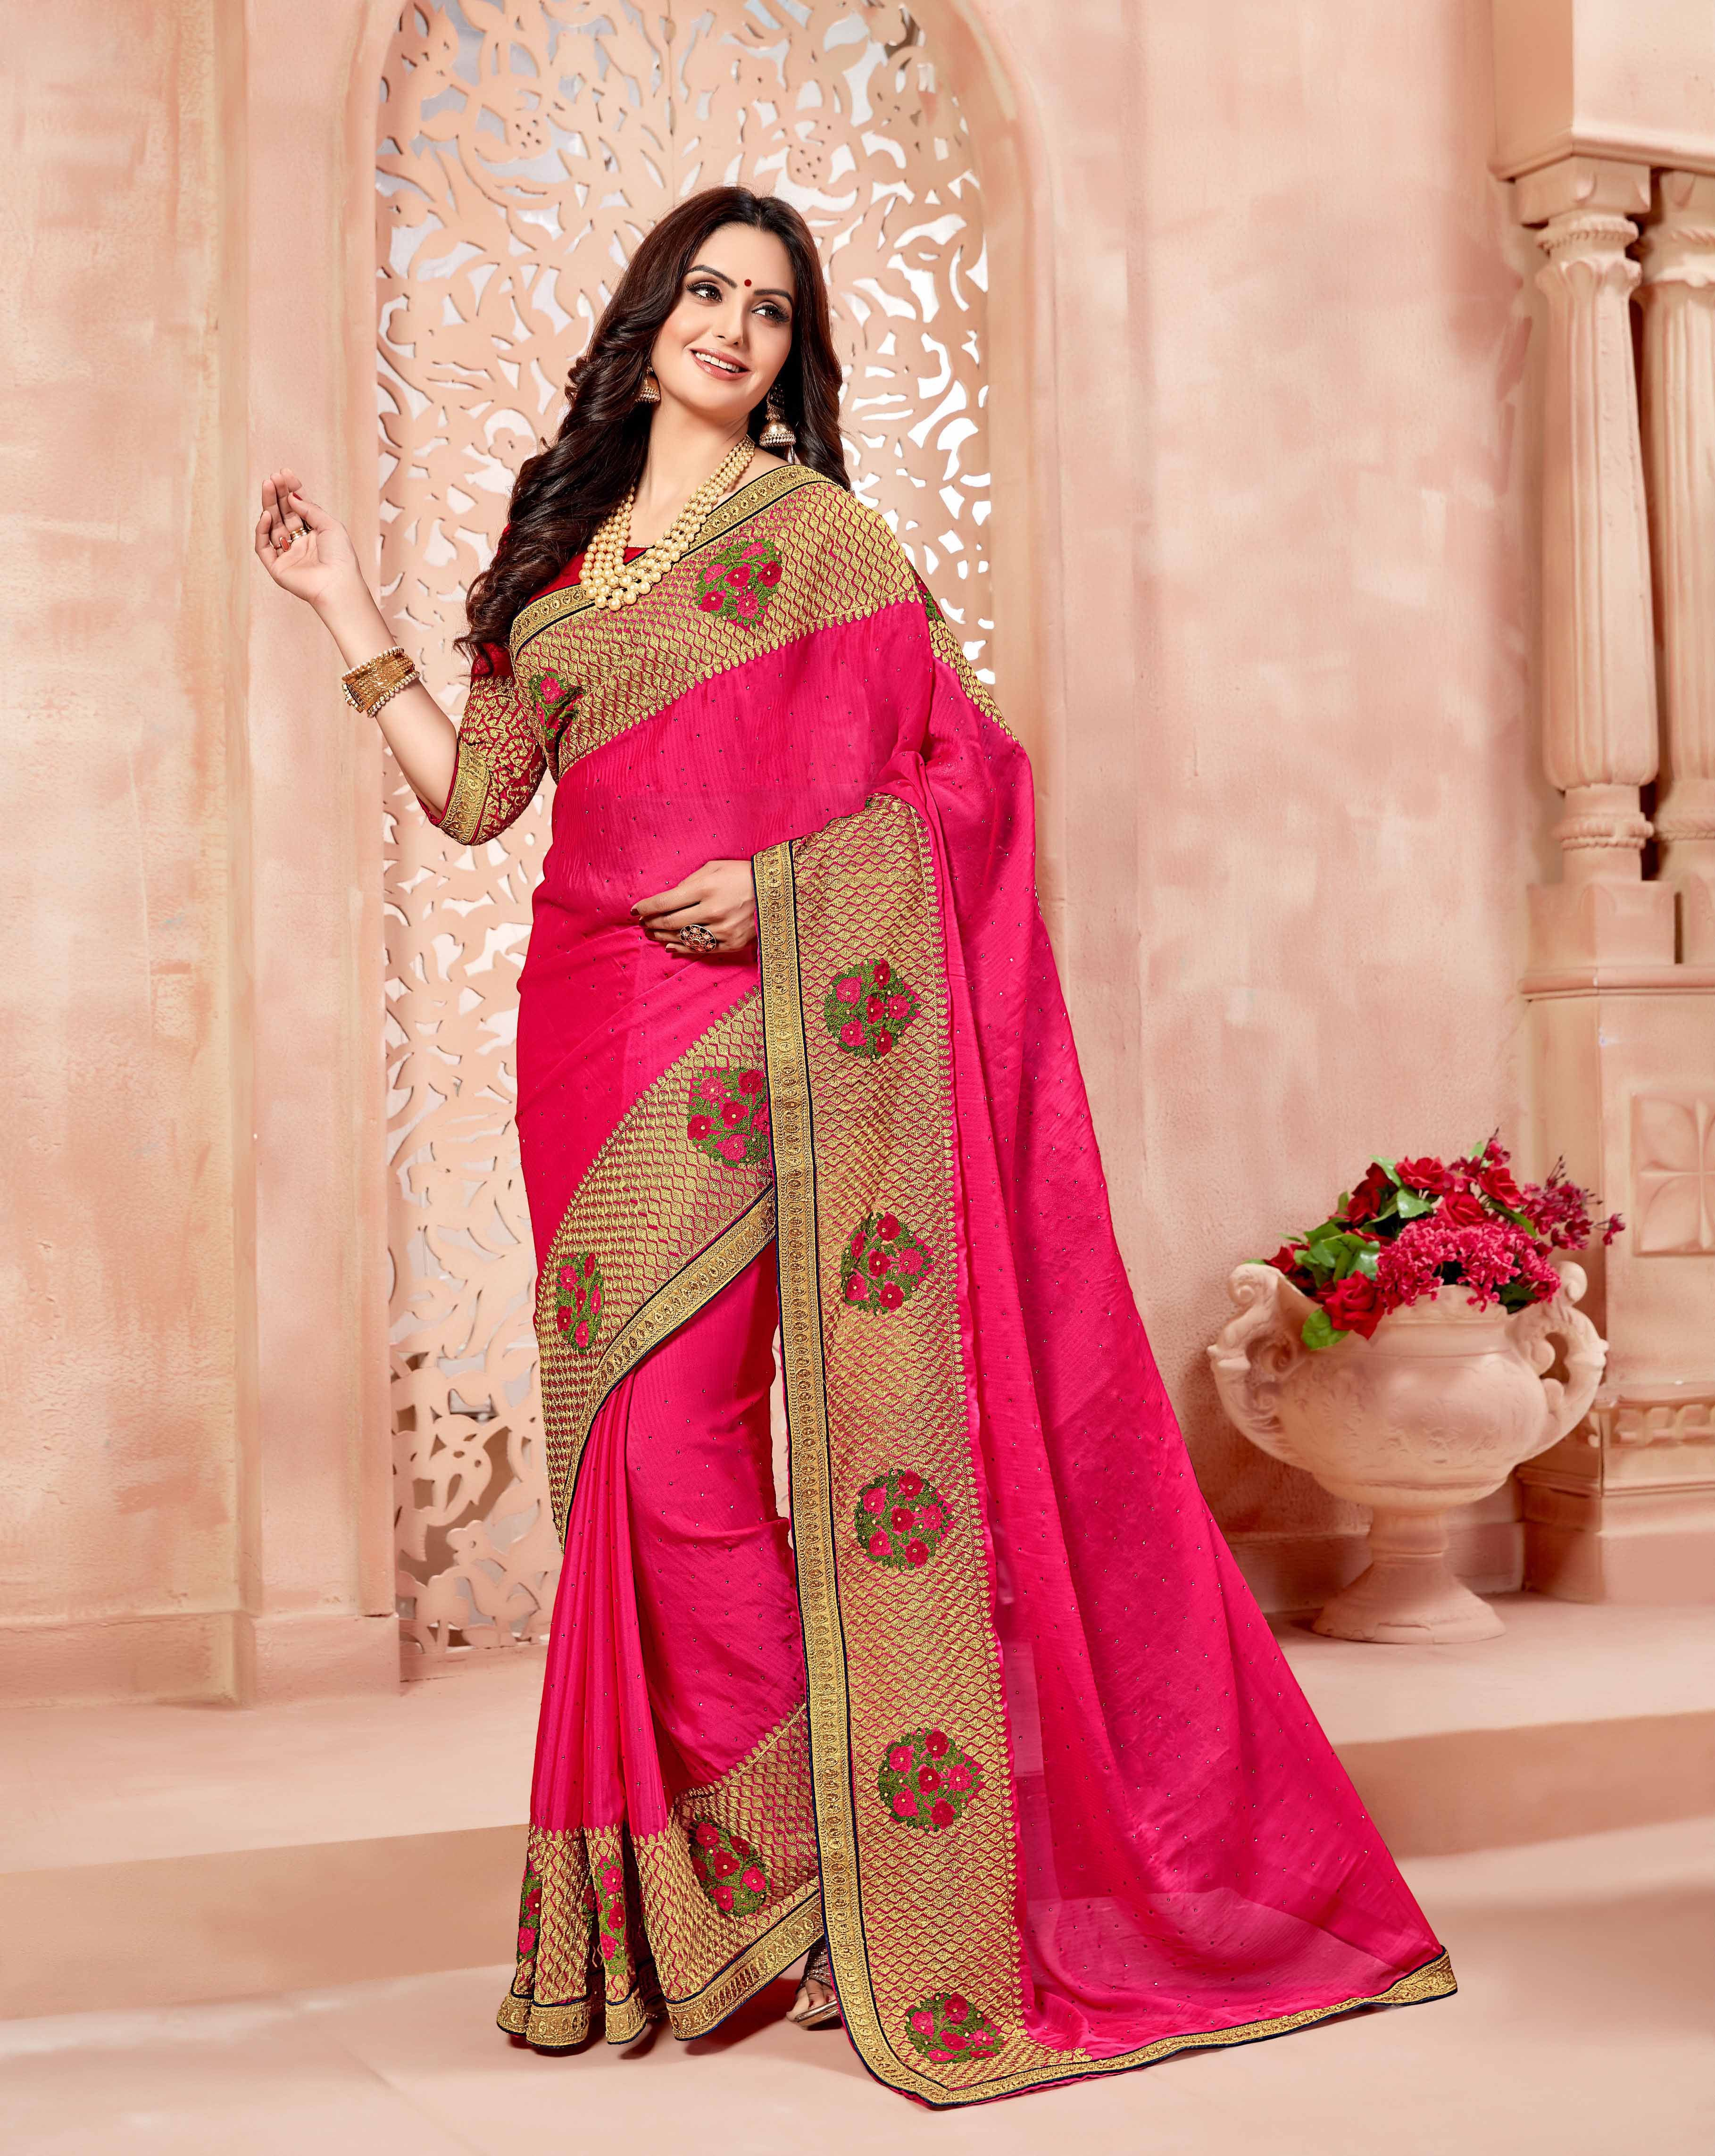 25ba3f6739f8cf Buy online Pink colour Heavy Designer Embroidered Saree at joshindia#saree,  #Wedding, #Hot, #Blouse, #Pattu, #Draping, #Farewell, #Photoshoot, #Cotton,  ...